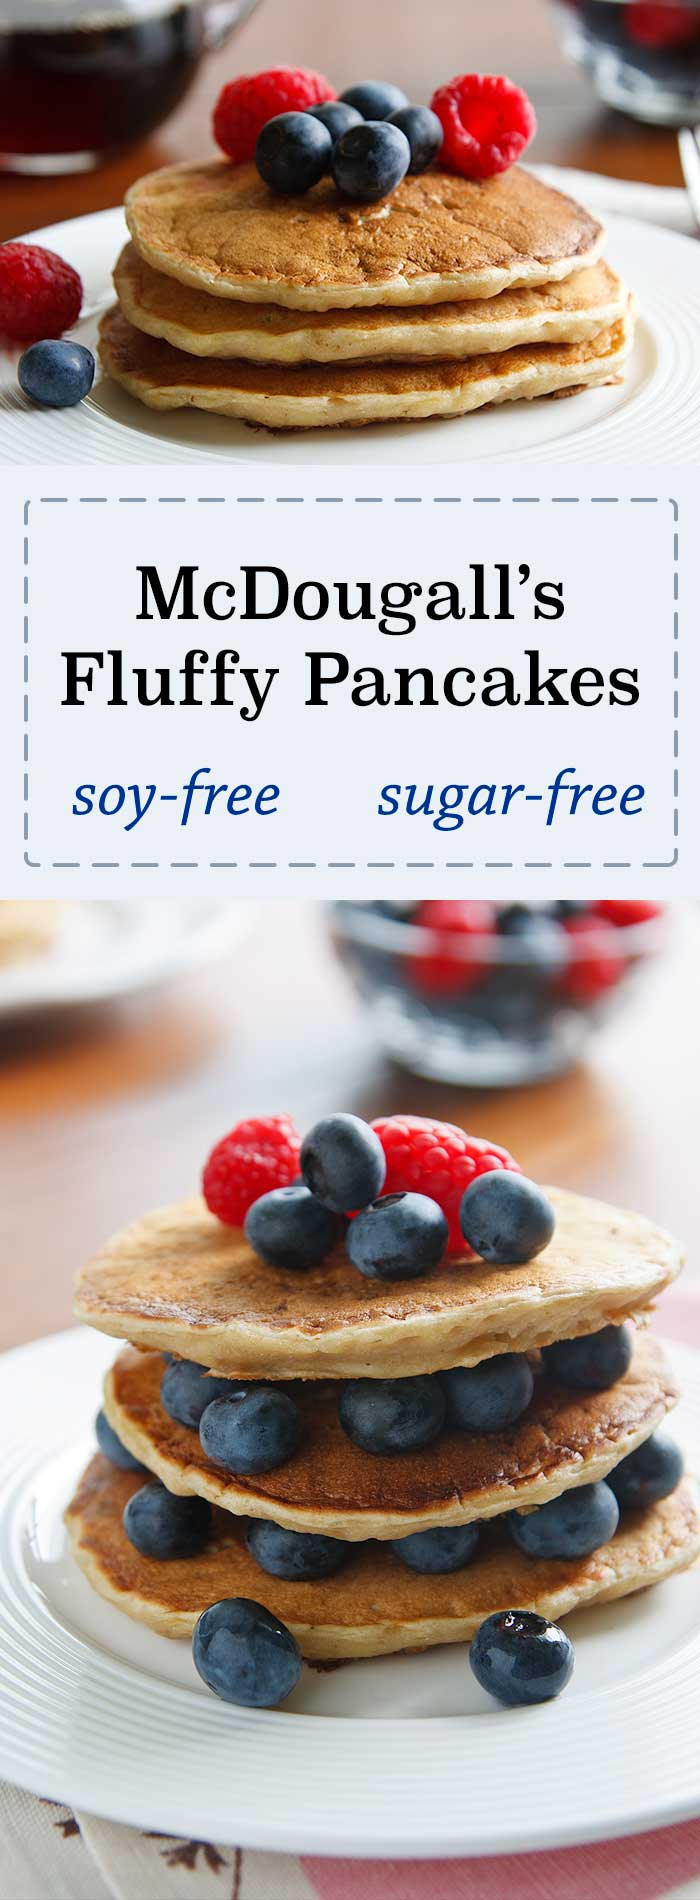 These vegan pancakes are fluffy without eggs and contain no added sugar or soy. Banana adds flavor and tenderness!